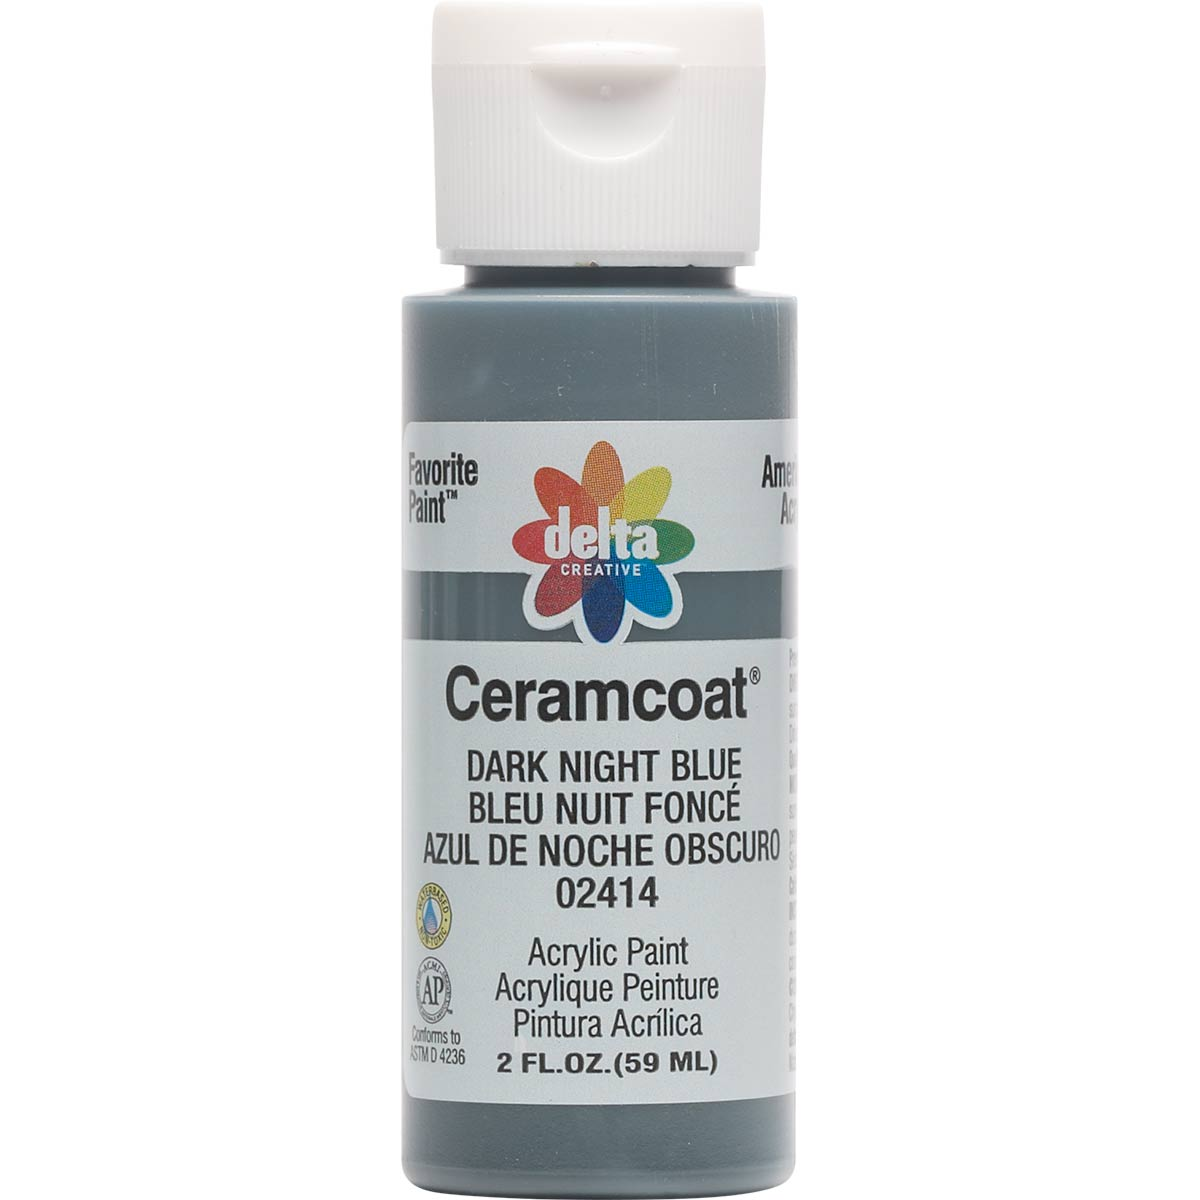 Delta Ceramcoat ® Acrylic Paint - Dark Night Blue, 2 oz. - 024140202W